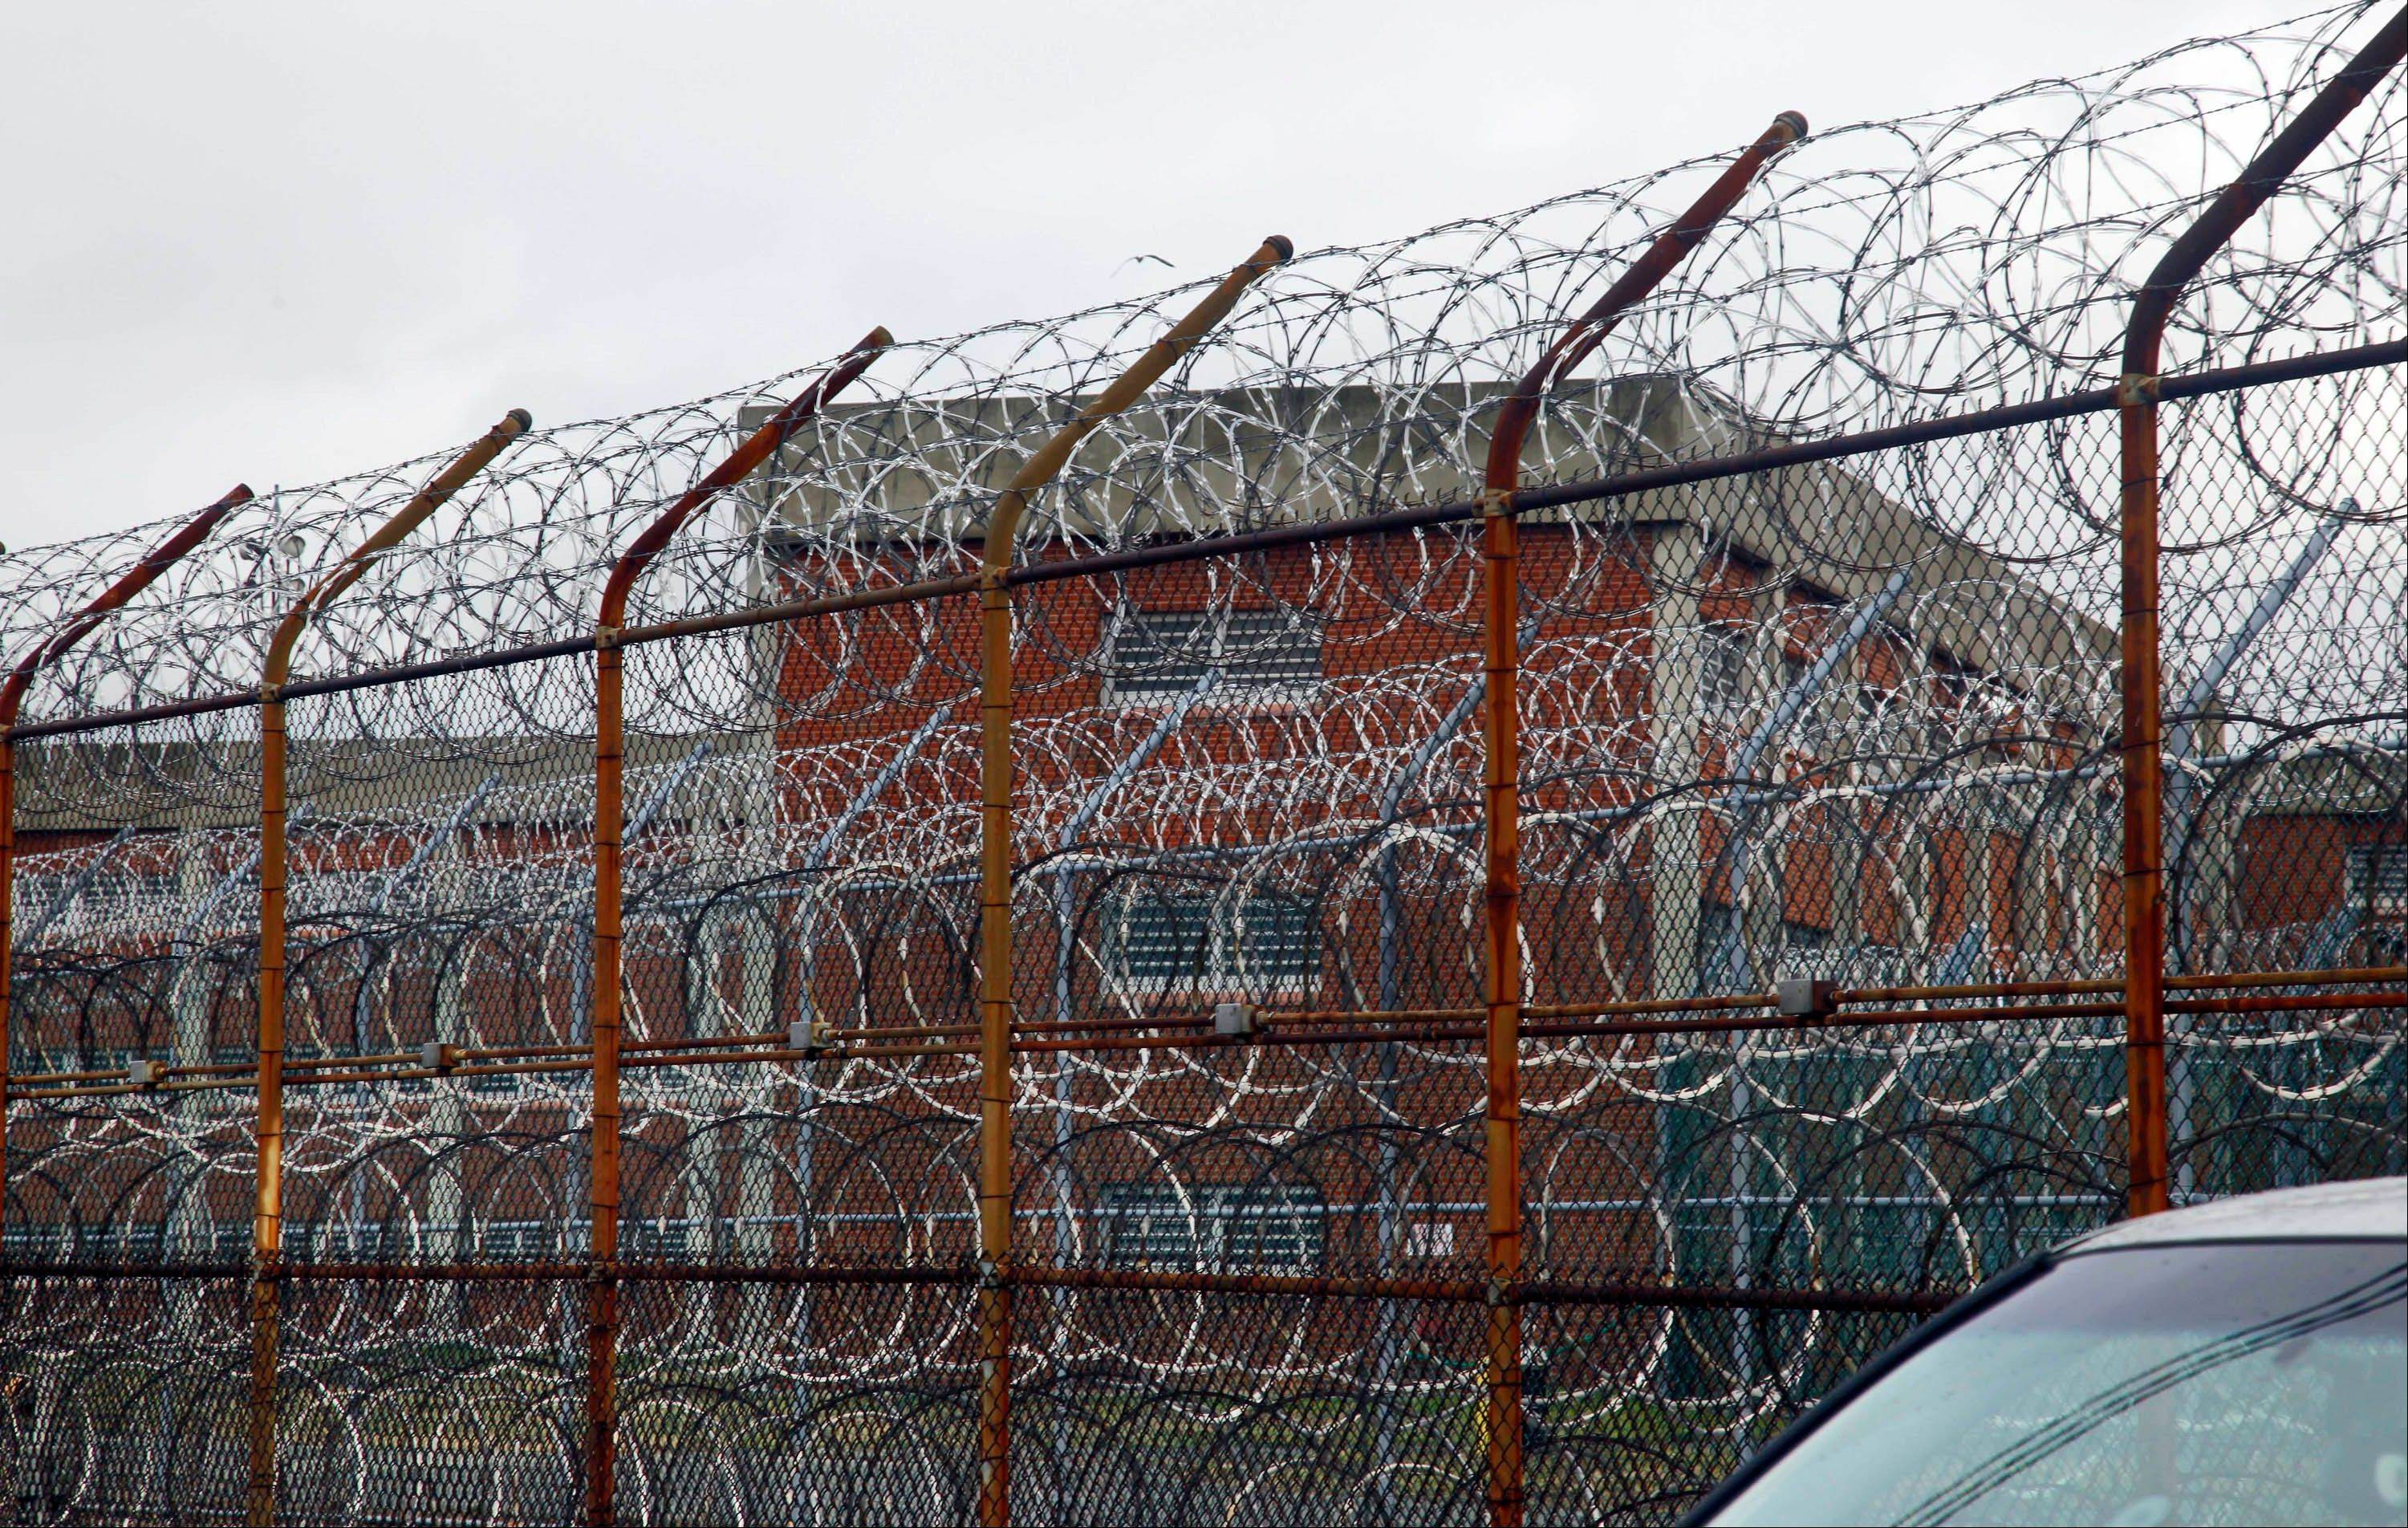 Associated Press/March 16, 2011A barbed wire fence outside inmate housing on New York's Rikers Island correctional facility in New York.